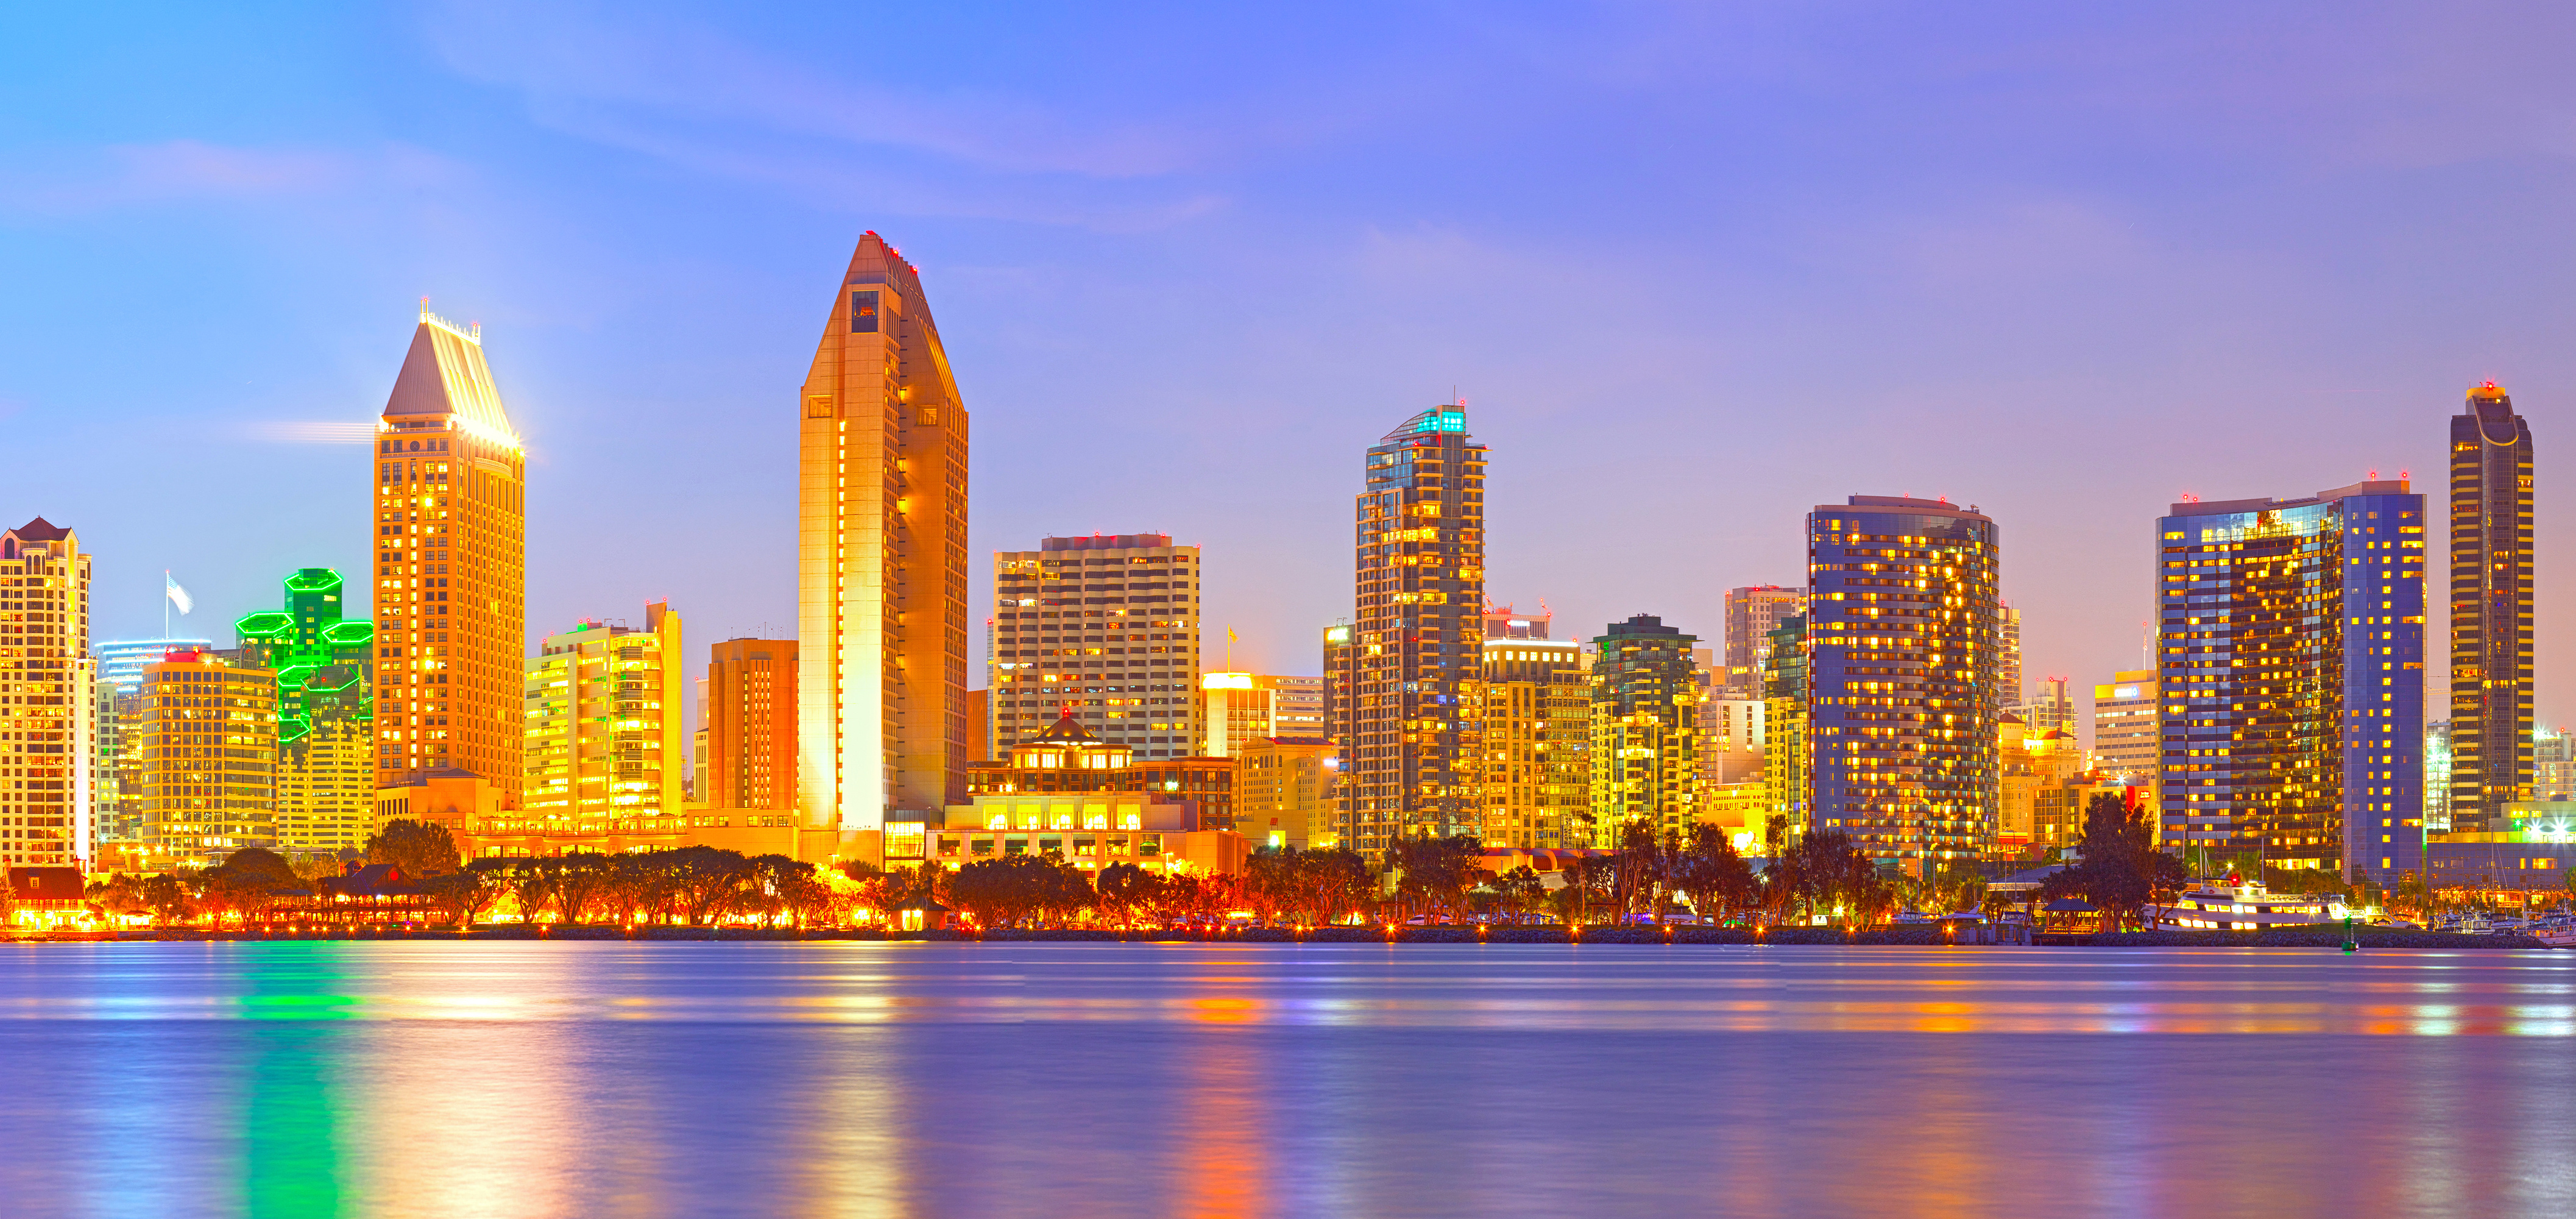 San Diego California, city skyline at sunset on a beautiful summer night with lighted skyscrapers and downtown buildings